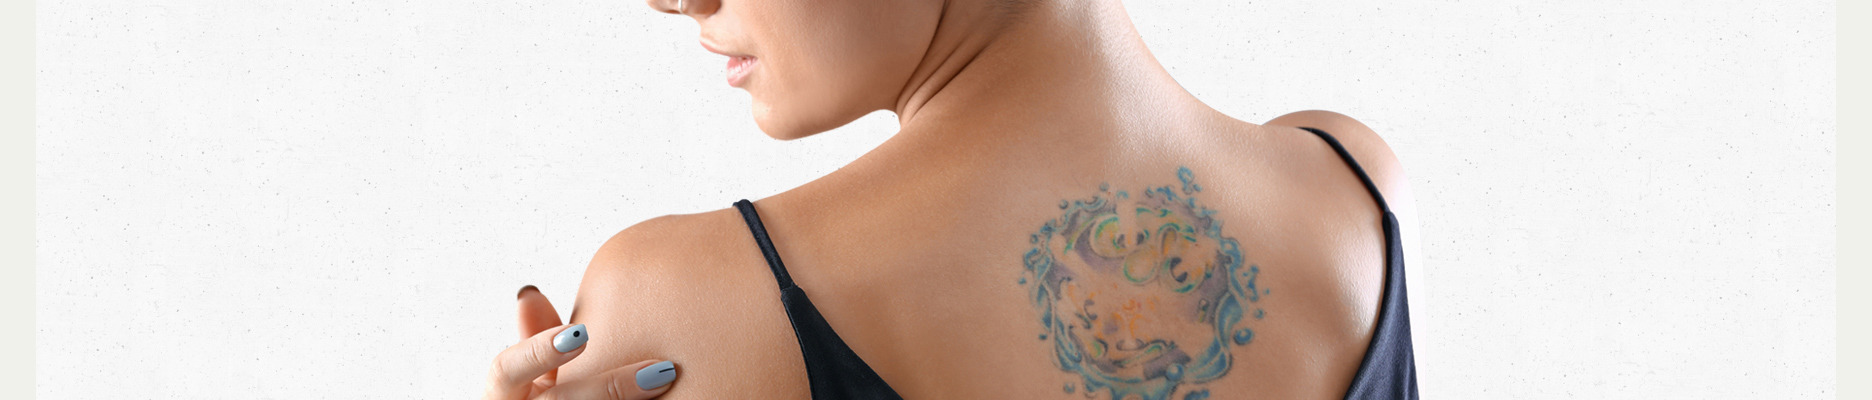 Laser Tattoo Removal Course | Beaulaz